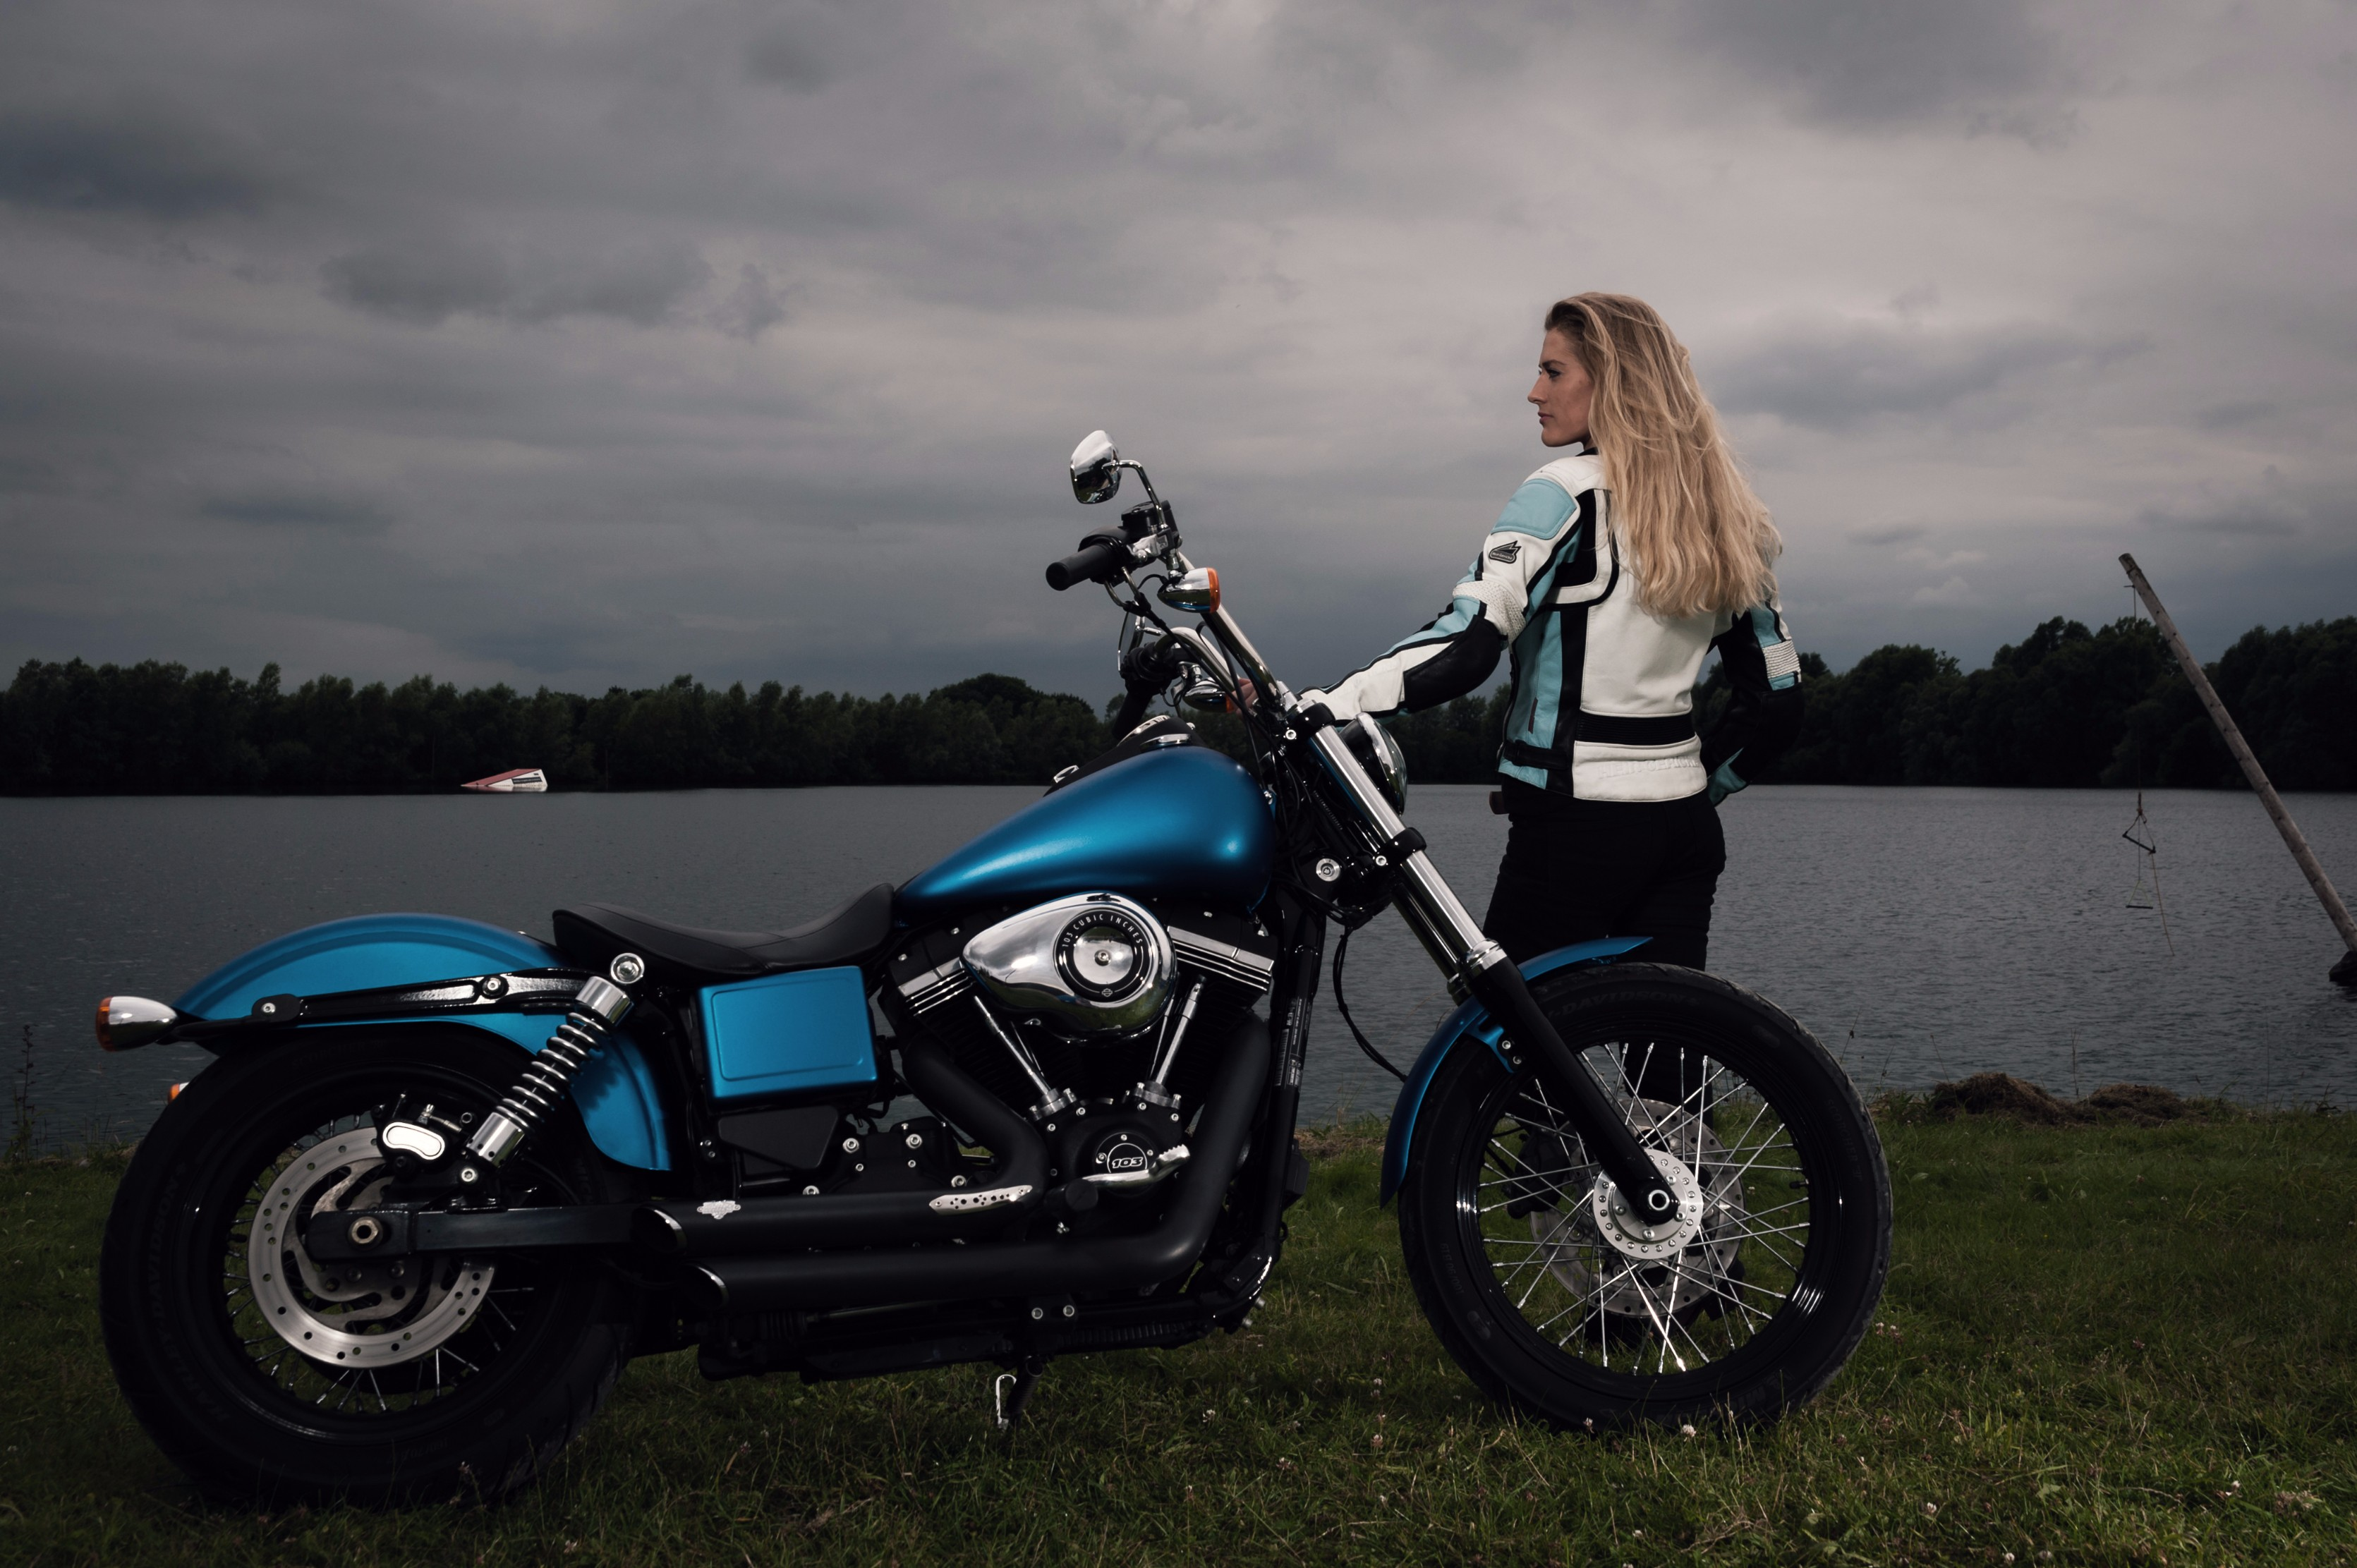 Pros cons and tips on vinyl wrapping motorcycle fuel tanks and vinyl wrapped harley davidson street bob motorcycle shot by lewis baker solutioingenieria Choice Image